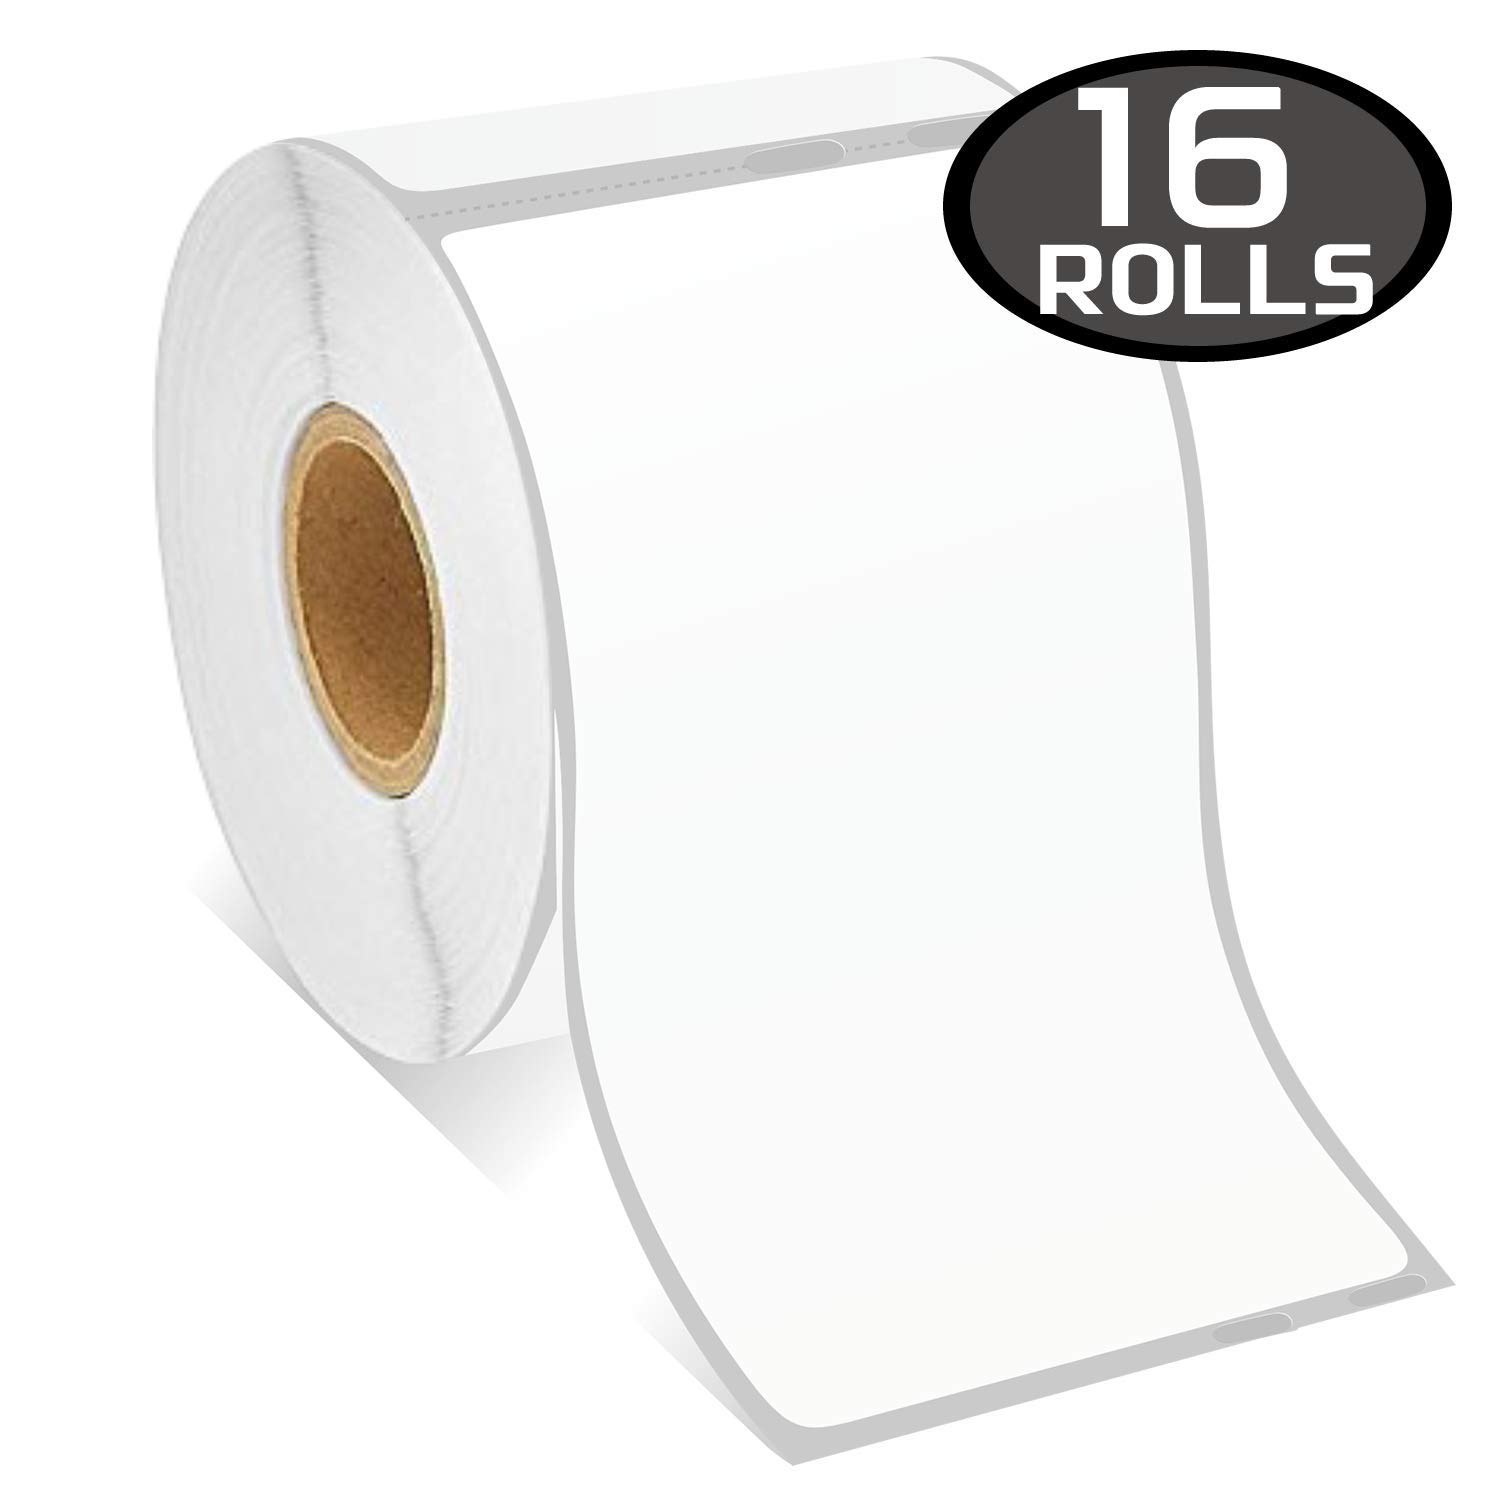 16 Rolls DYMO 30323 Compatible 2-1/8'' x 4''(54mm x 101mm) Shipping Labels,Compatible with Dymo 450, 450 Turbo, 4XL and Many More by BETCKEY